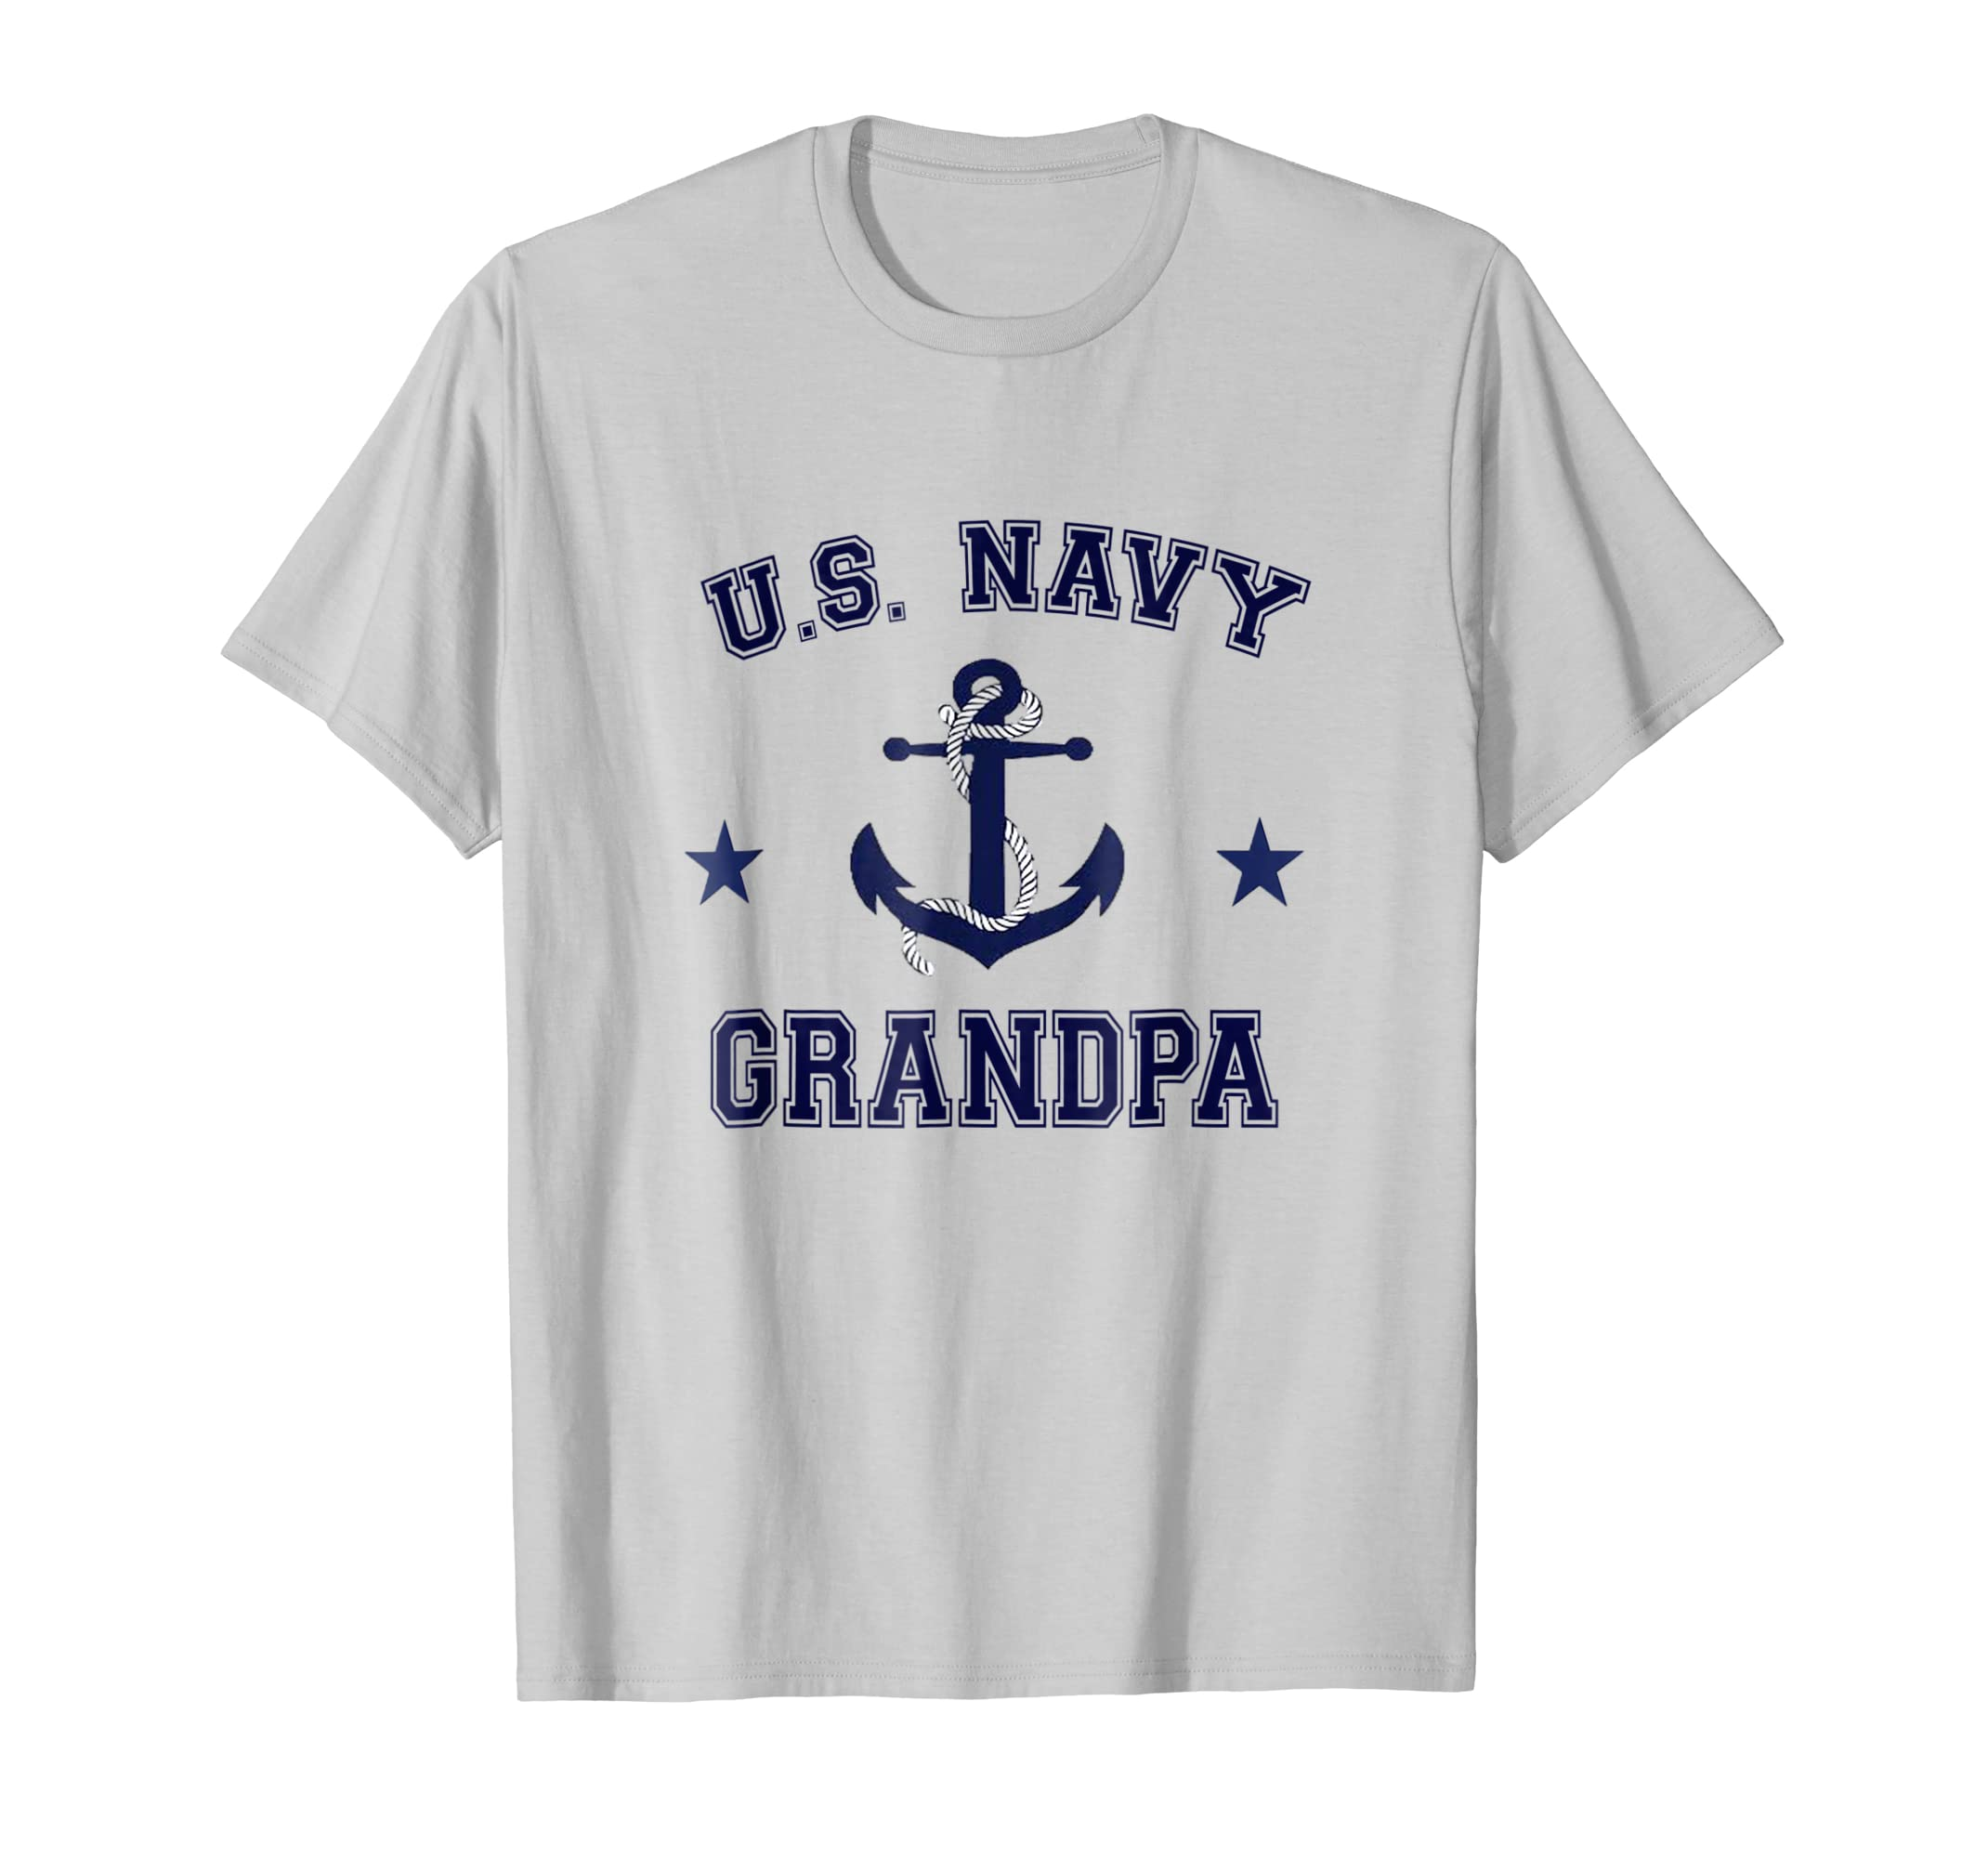 Military T Shirts Mens | Kuenzi Turf & Nursery